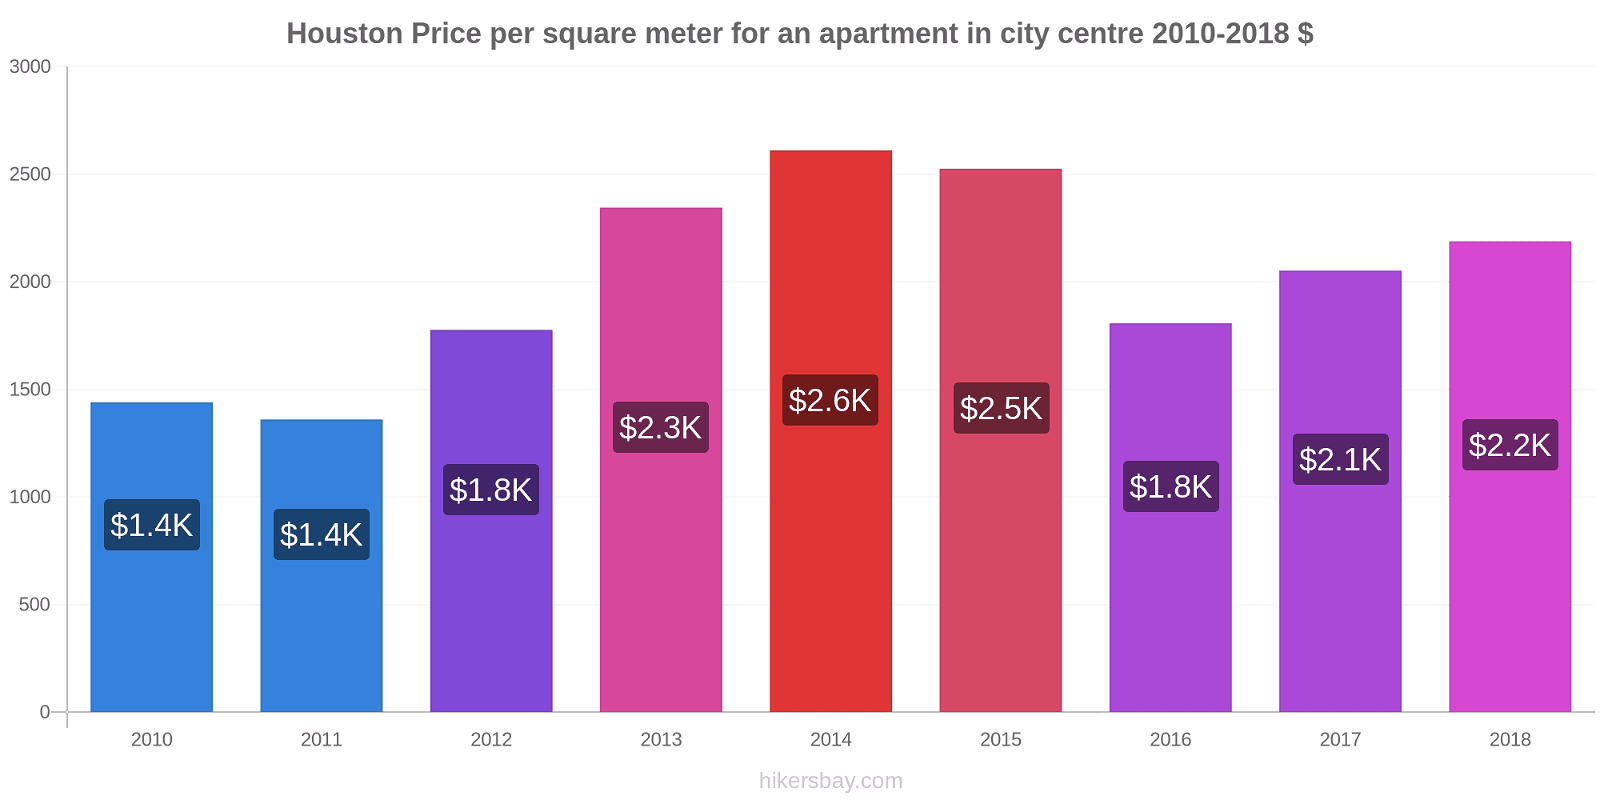 Houston price changes Price per square meter for an apartment in city centre hikersbay.com